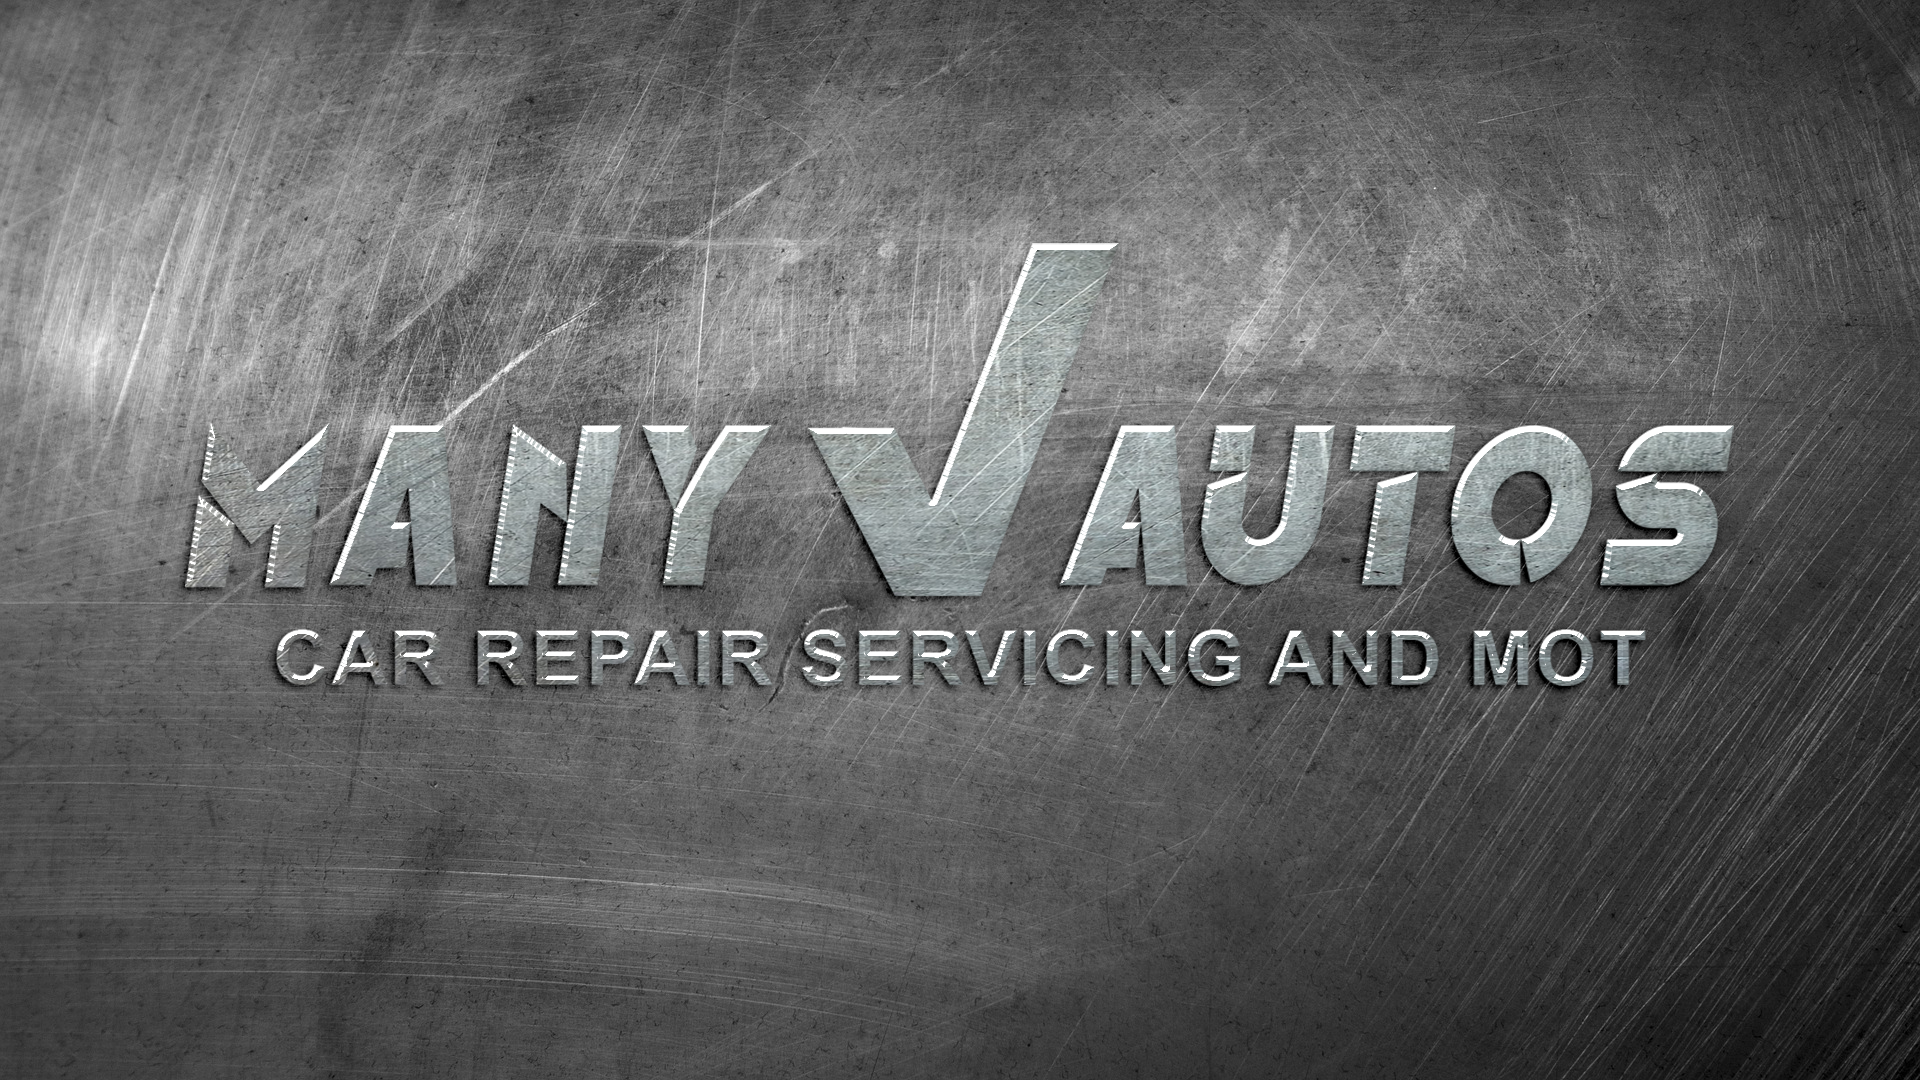 Car repair and servicing at Many Autos. We provide free